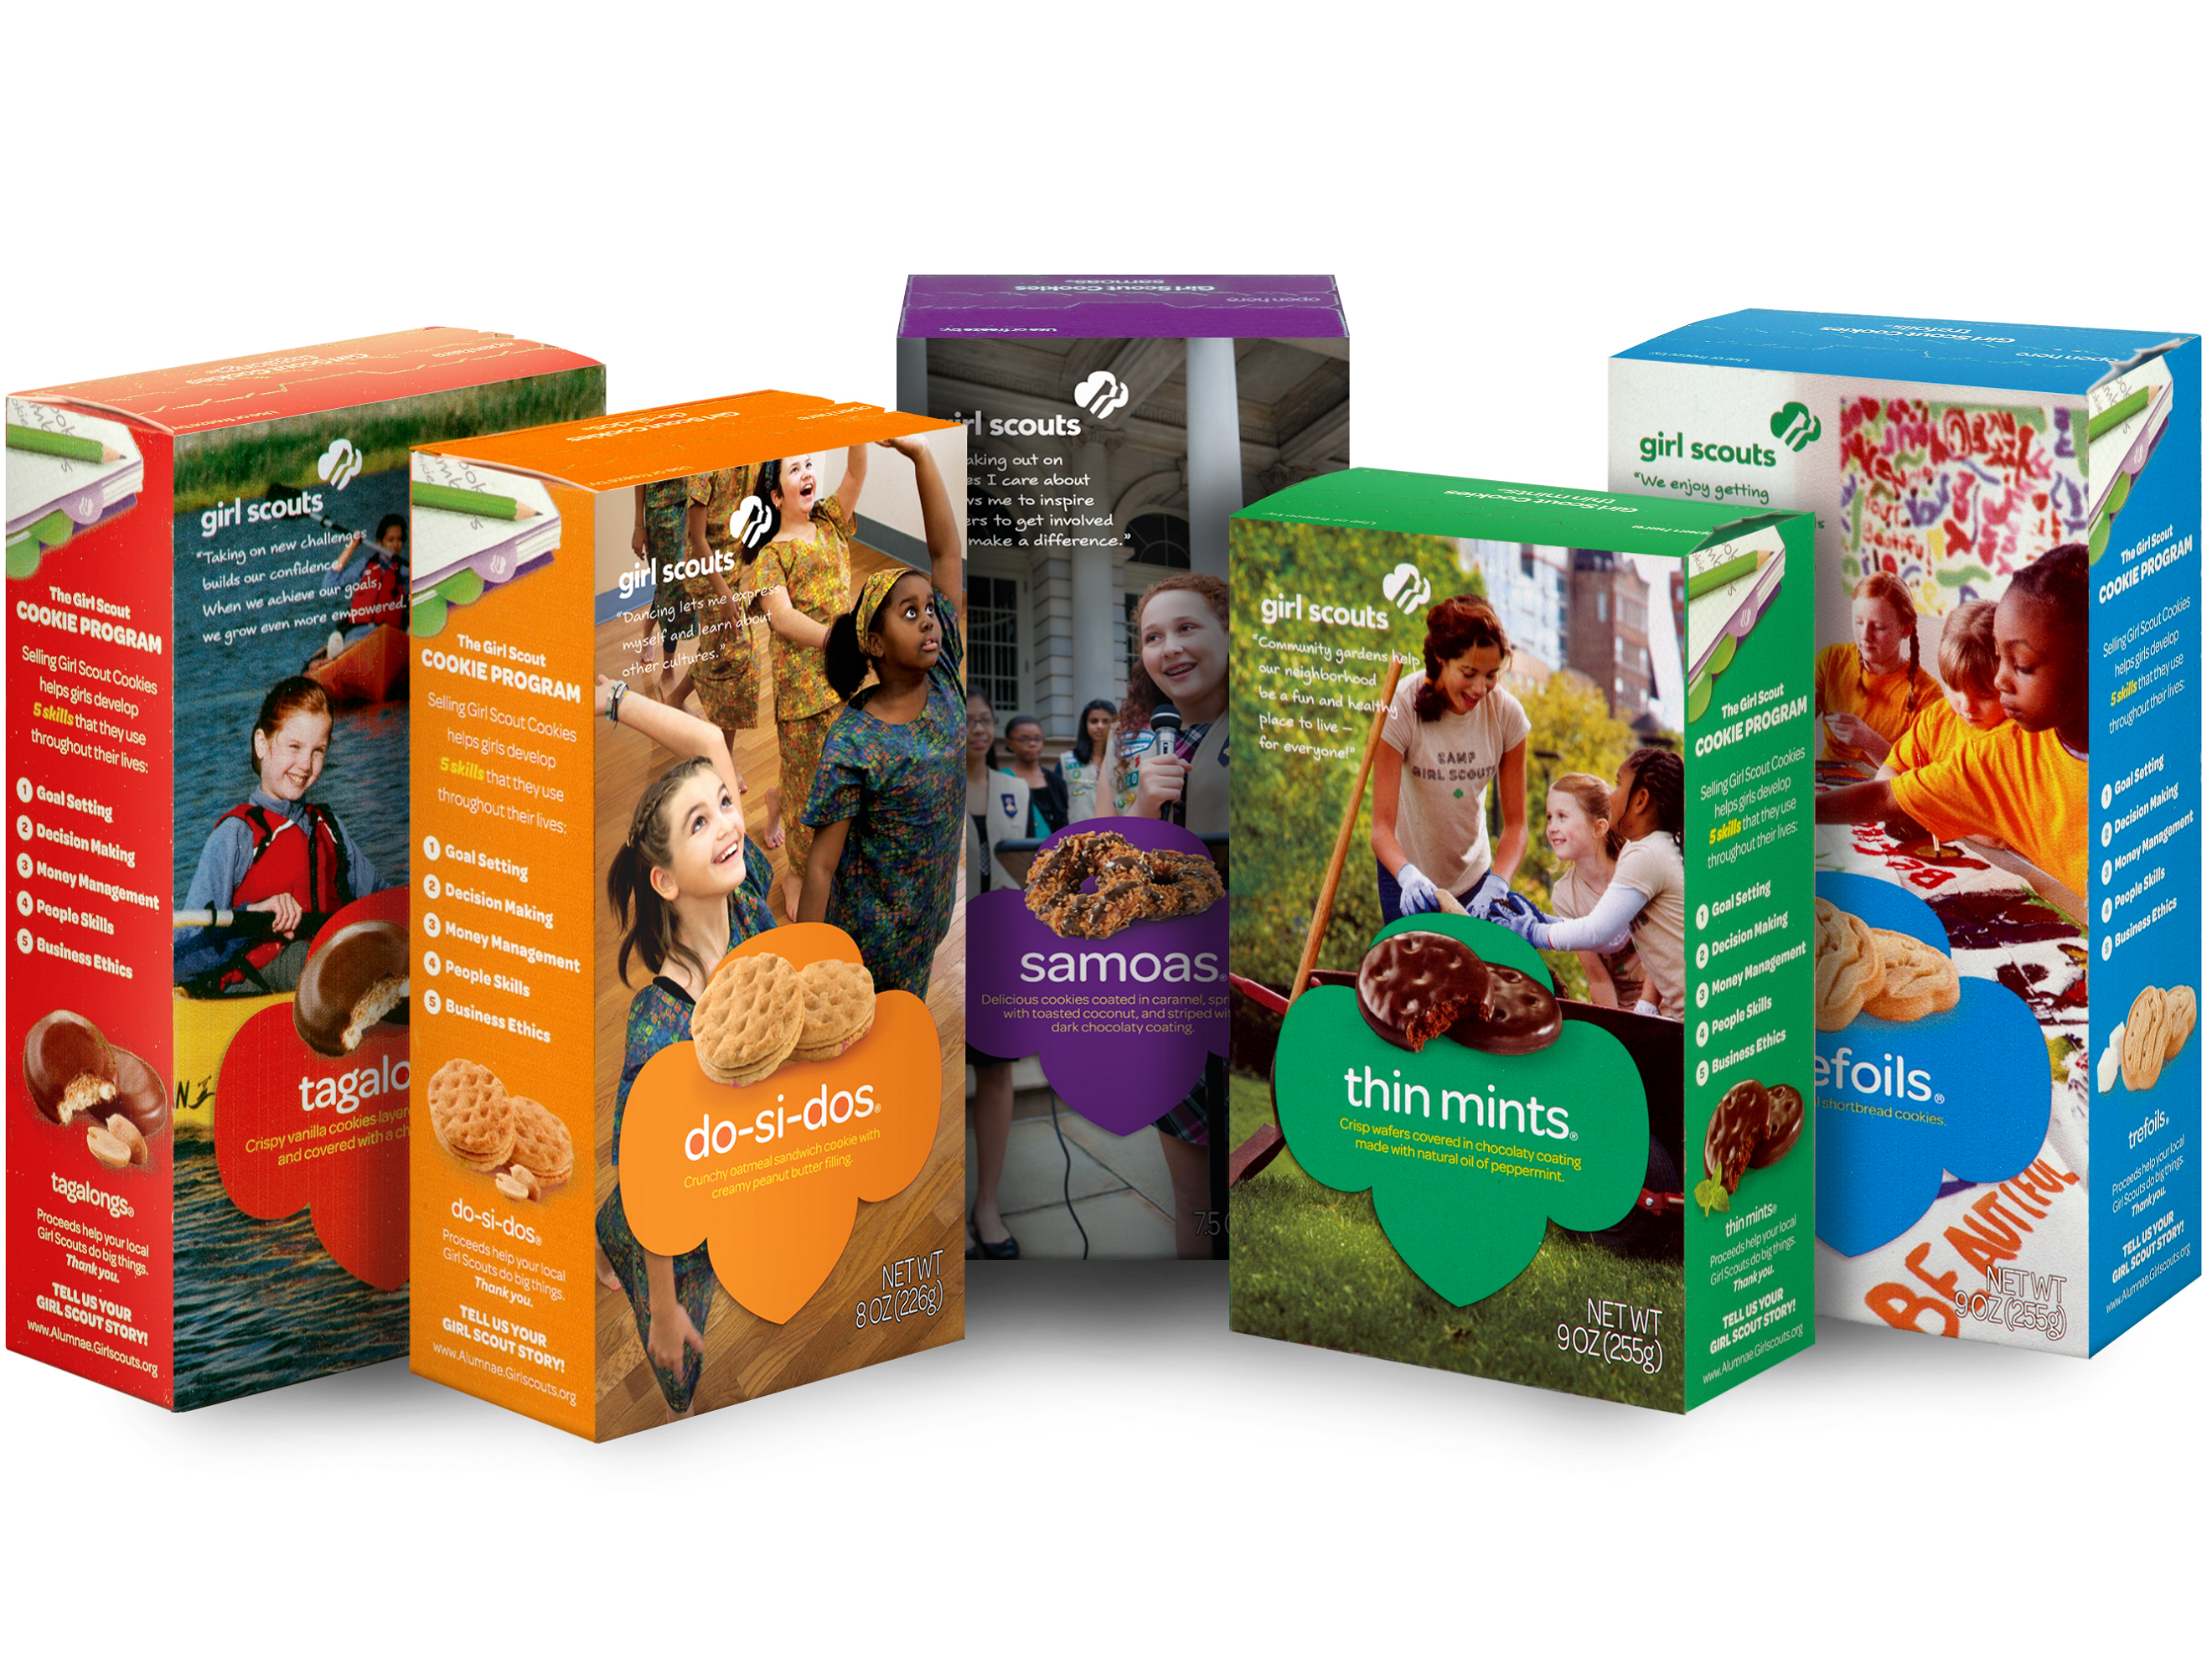 Samoa or Thin Mint? All you need to know about Girl Scouts cookies in Arizona in 2019